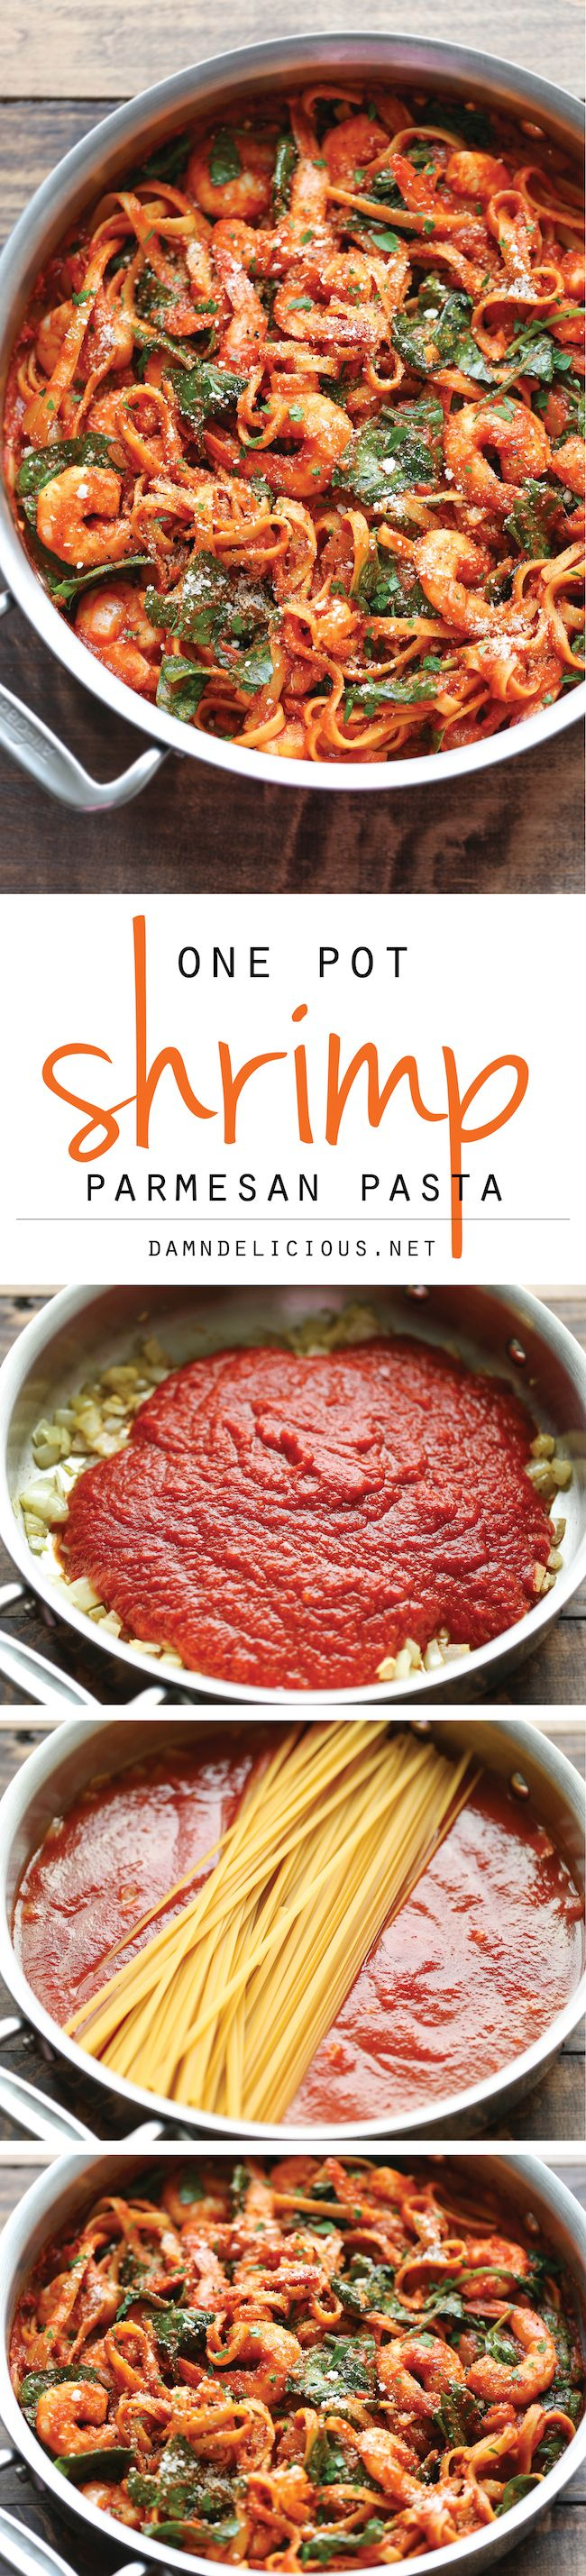 One Pot Shrimp Parmesan Pasta - The boring old spaghetti gets a fun twist in this super easy one pot meal - even the pasta gets cooked right in!